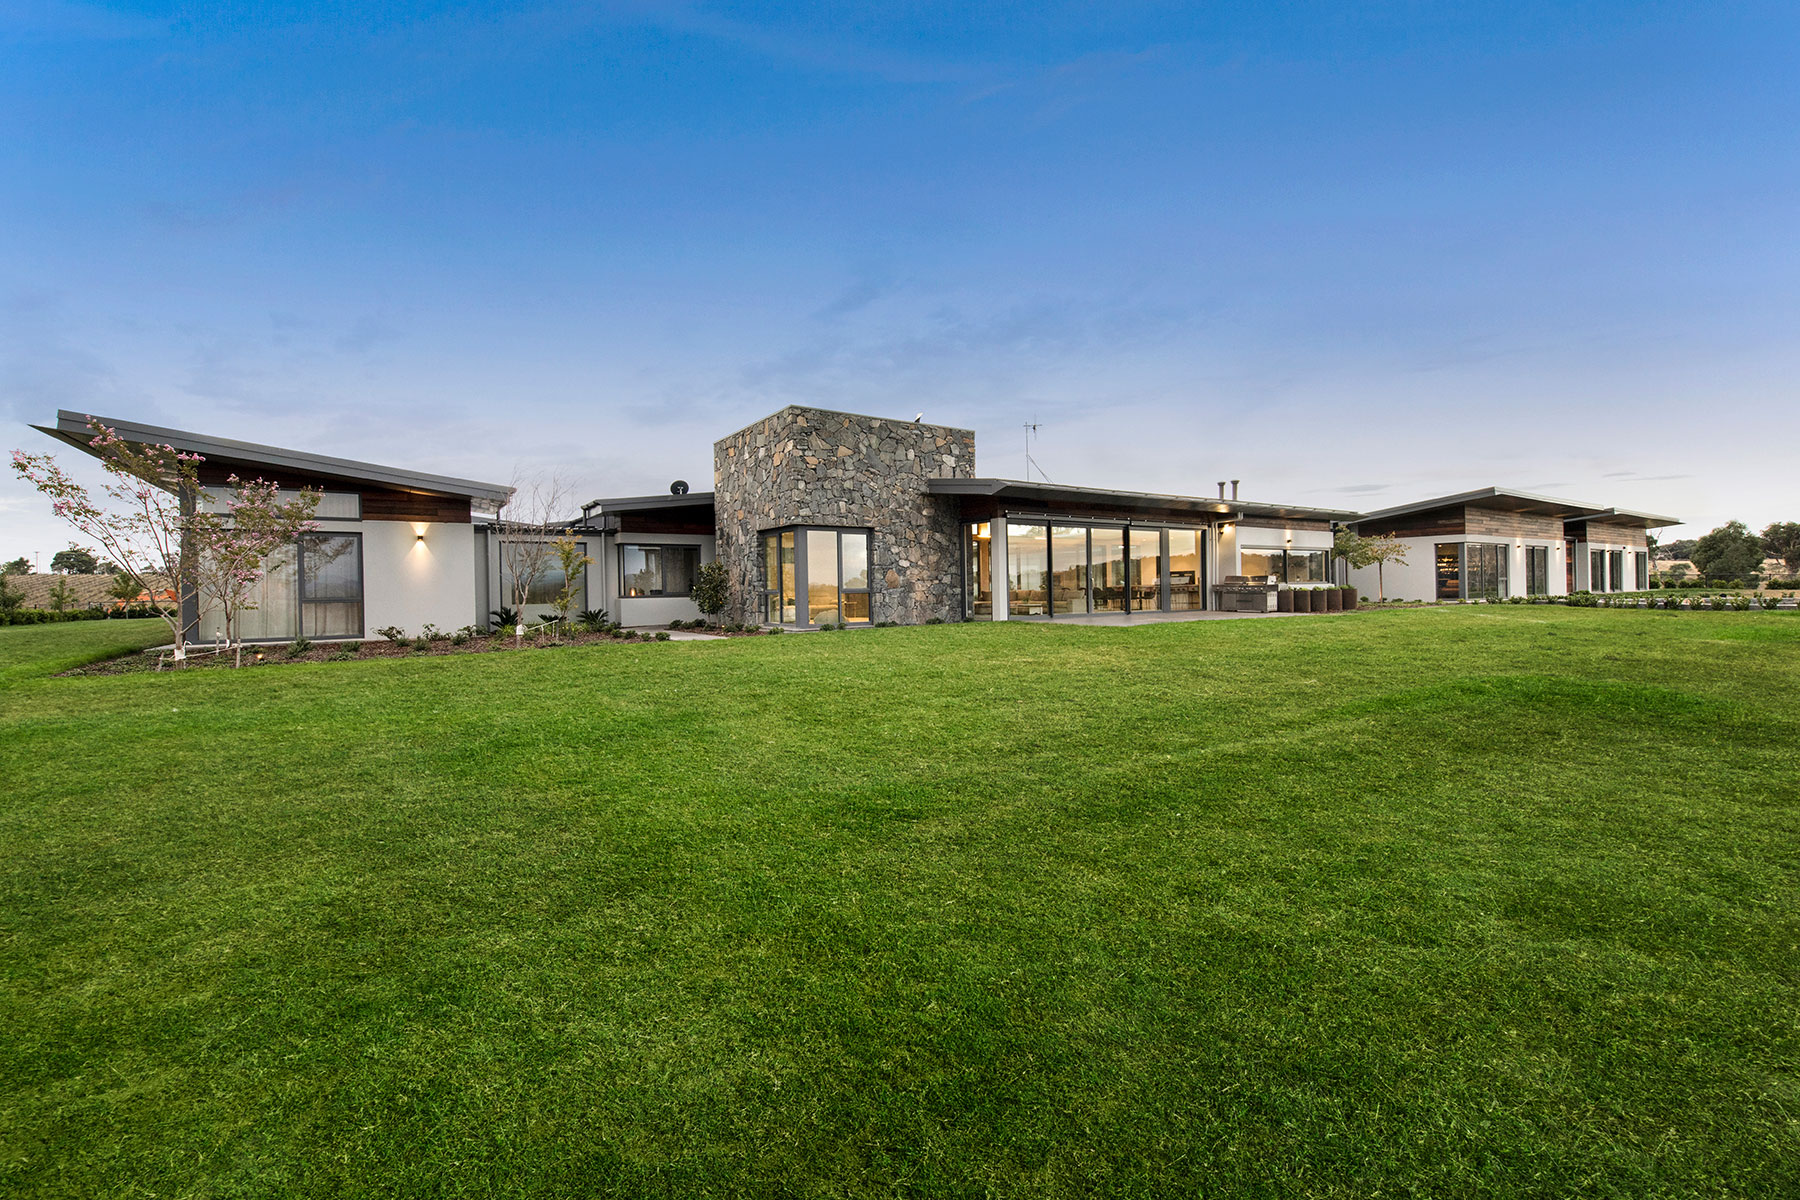 2019 MBA House of the Year gallery image